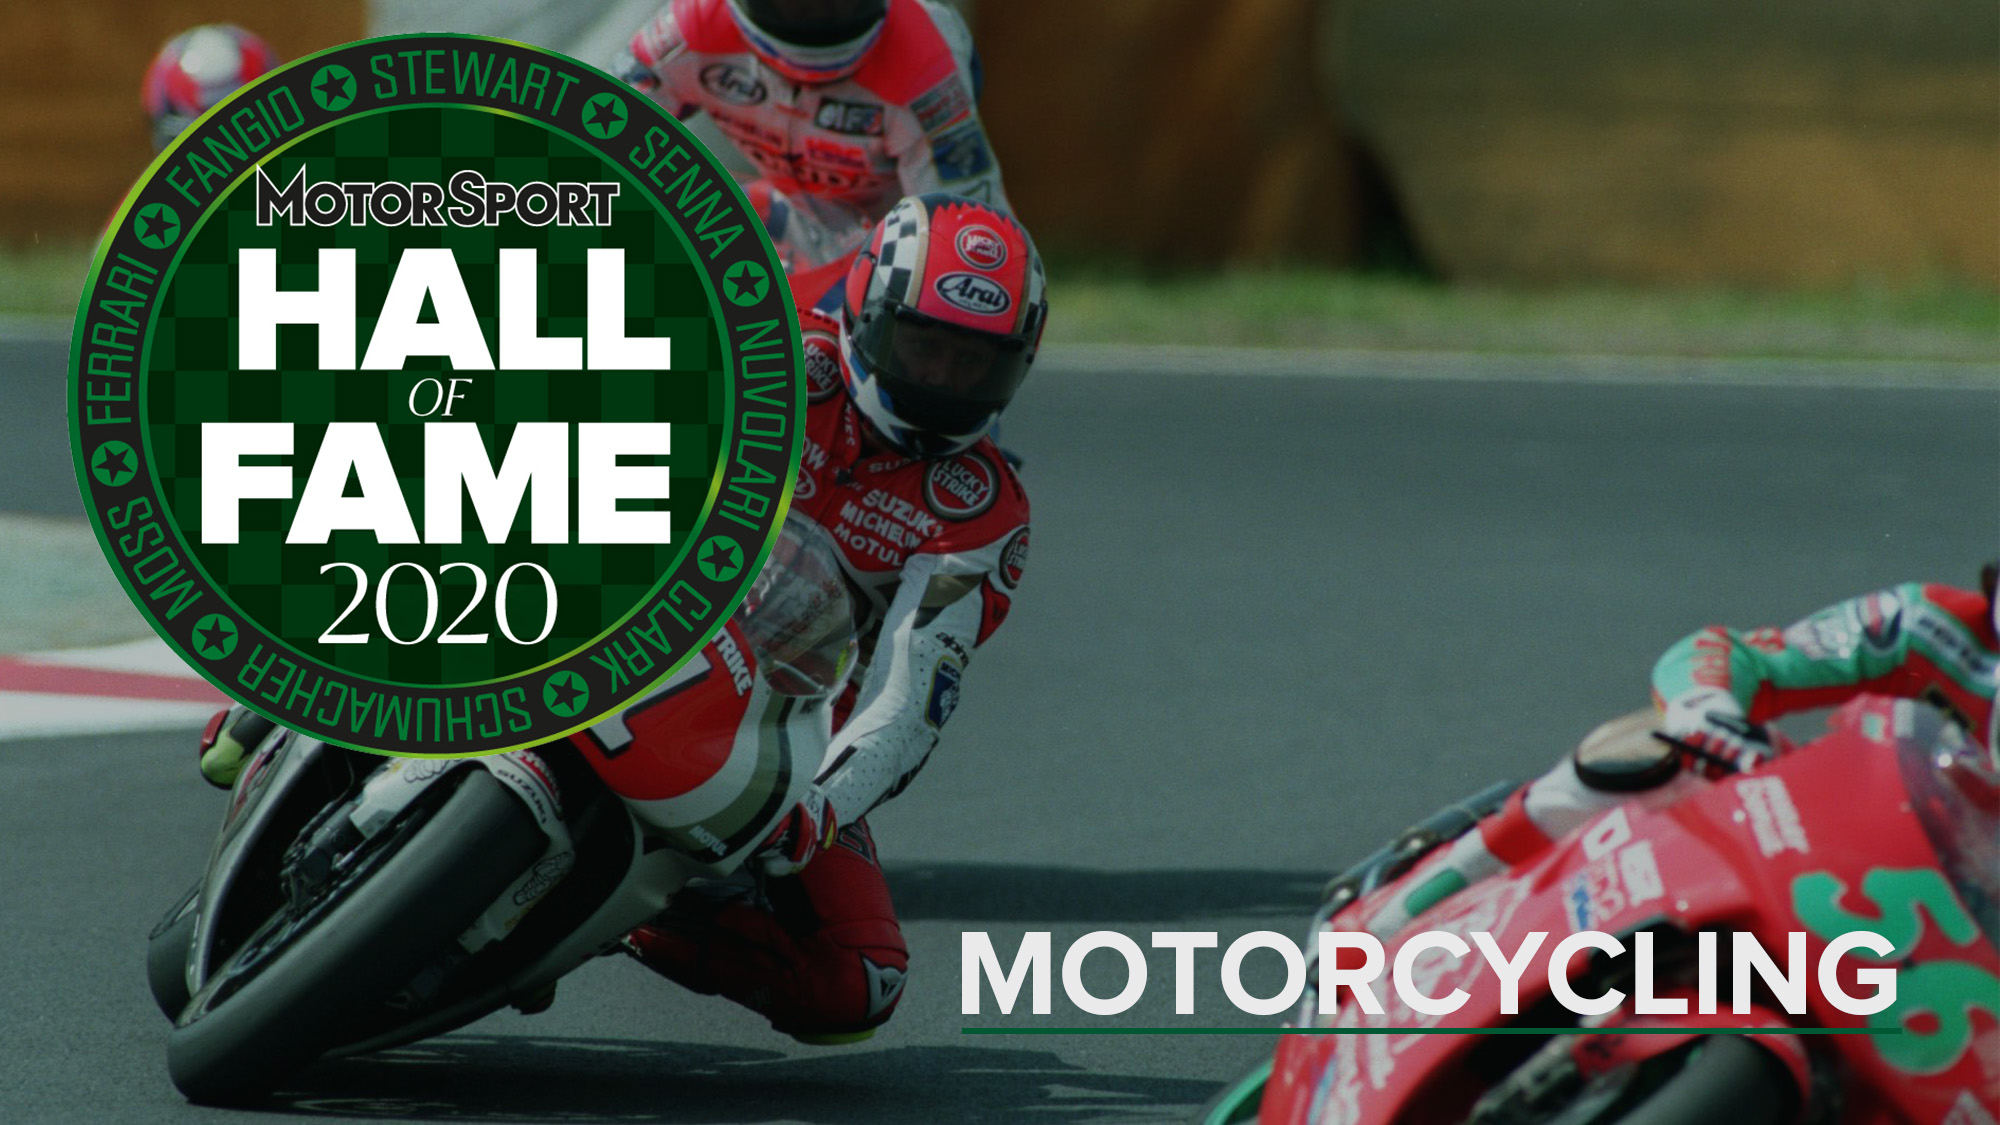 Hall of Fame 2020: Motorcycling nominees